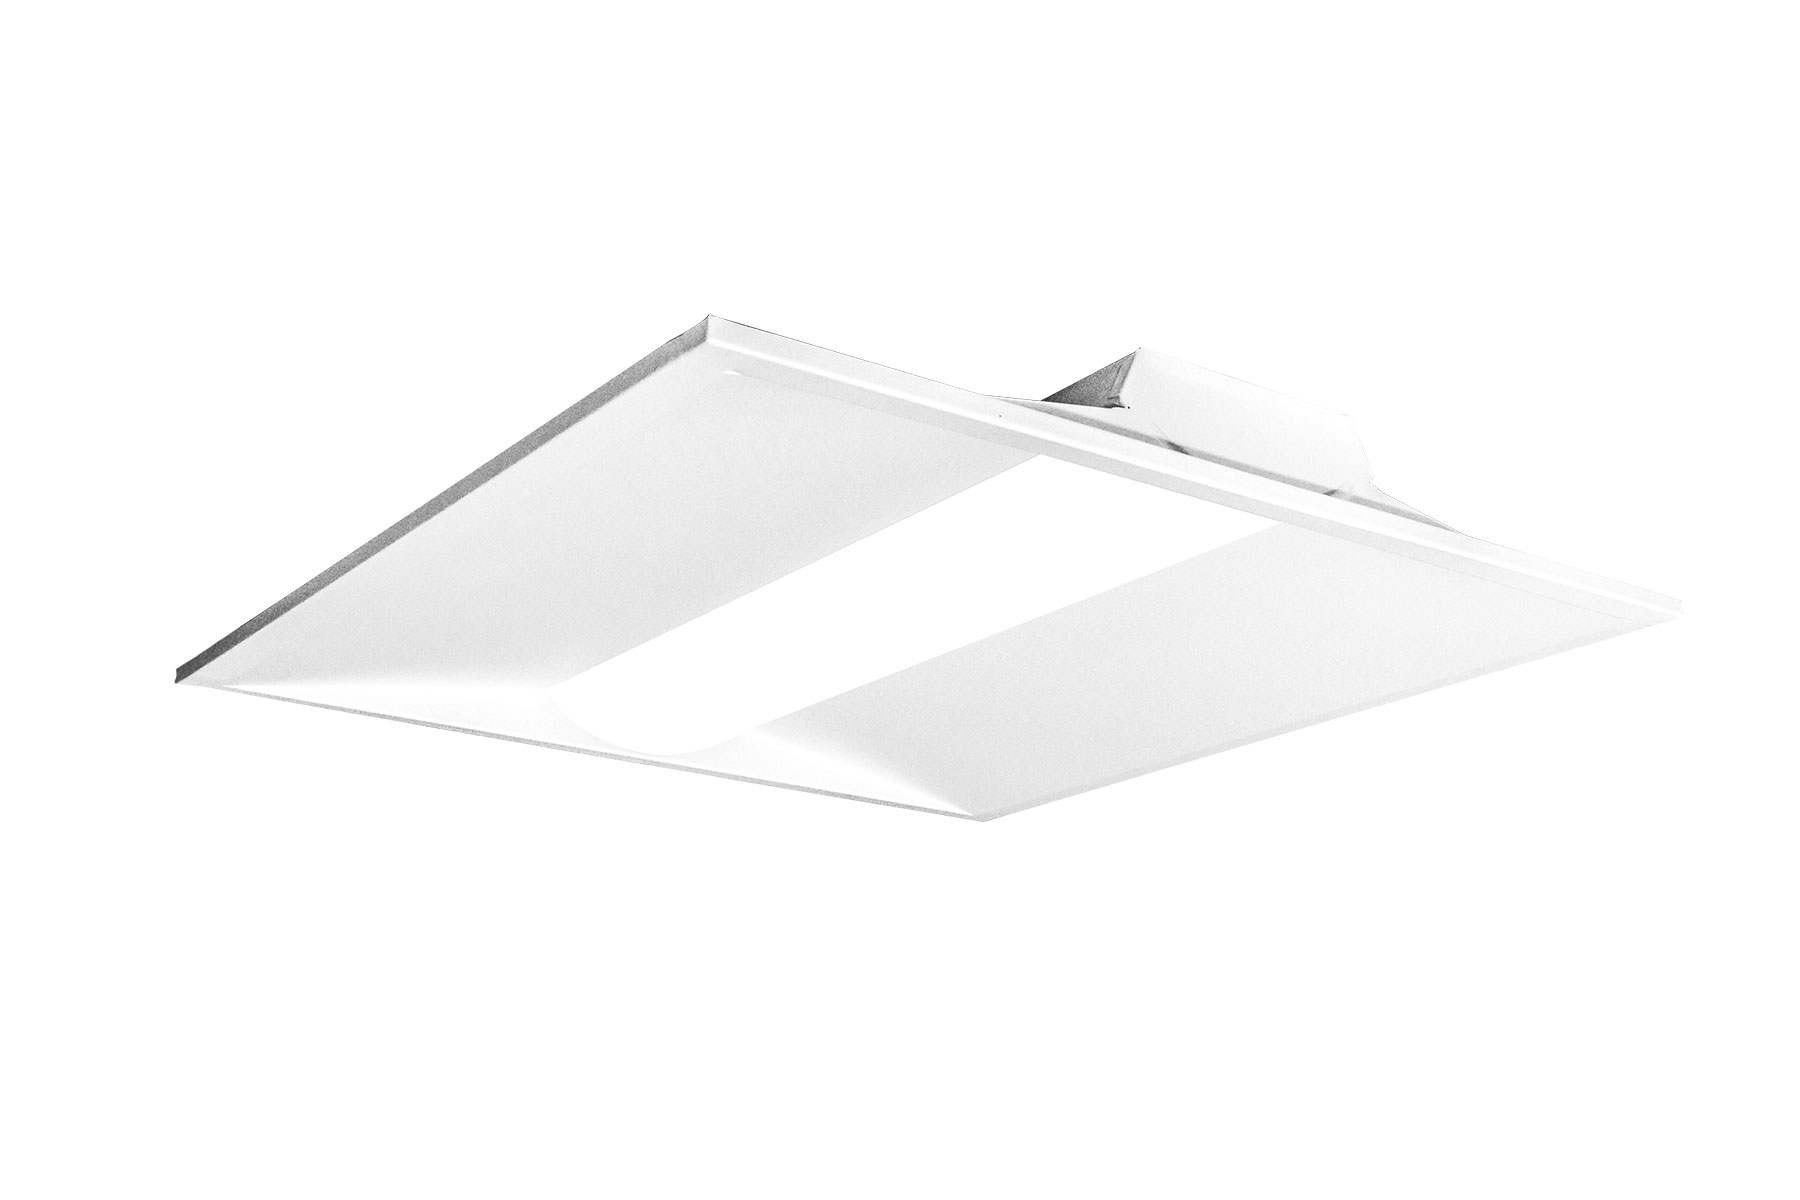 2FTx2FT-CCT-LED-TROFFER